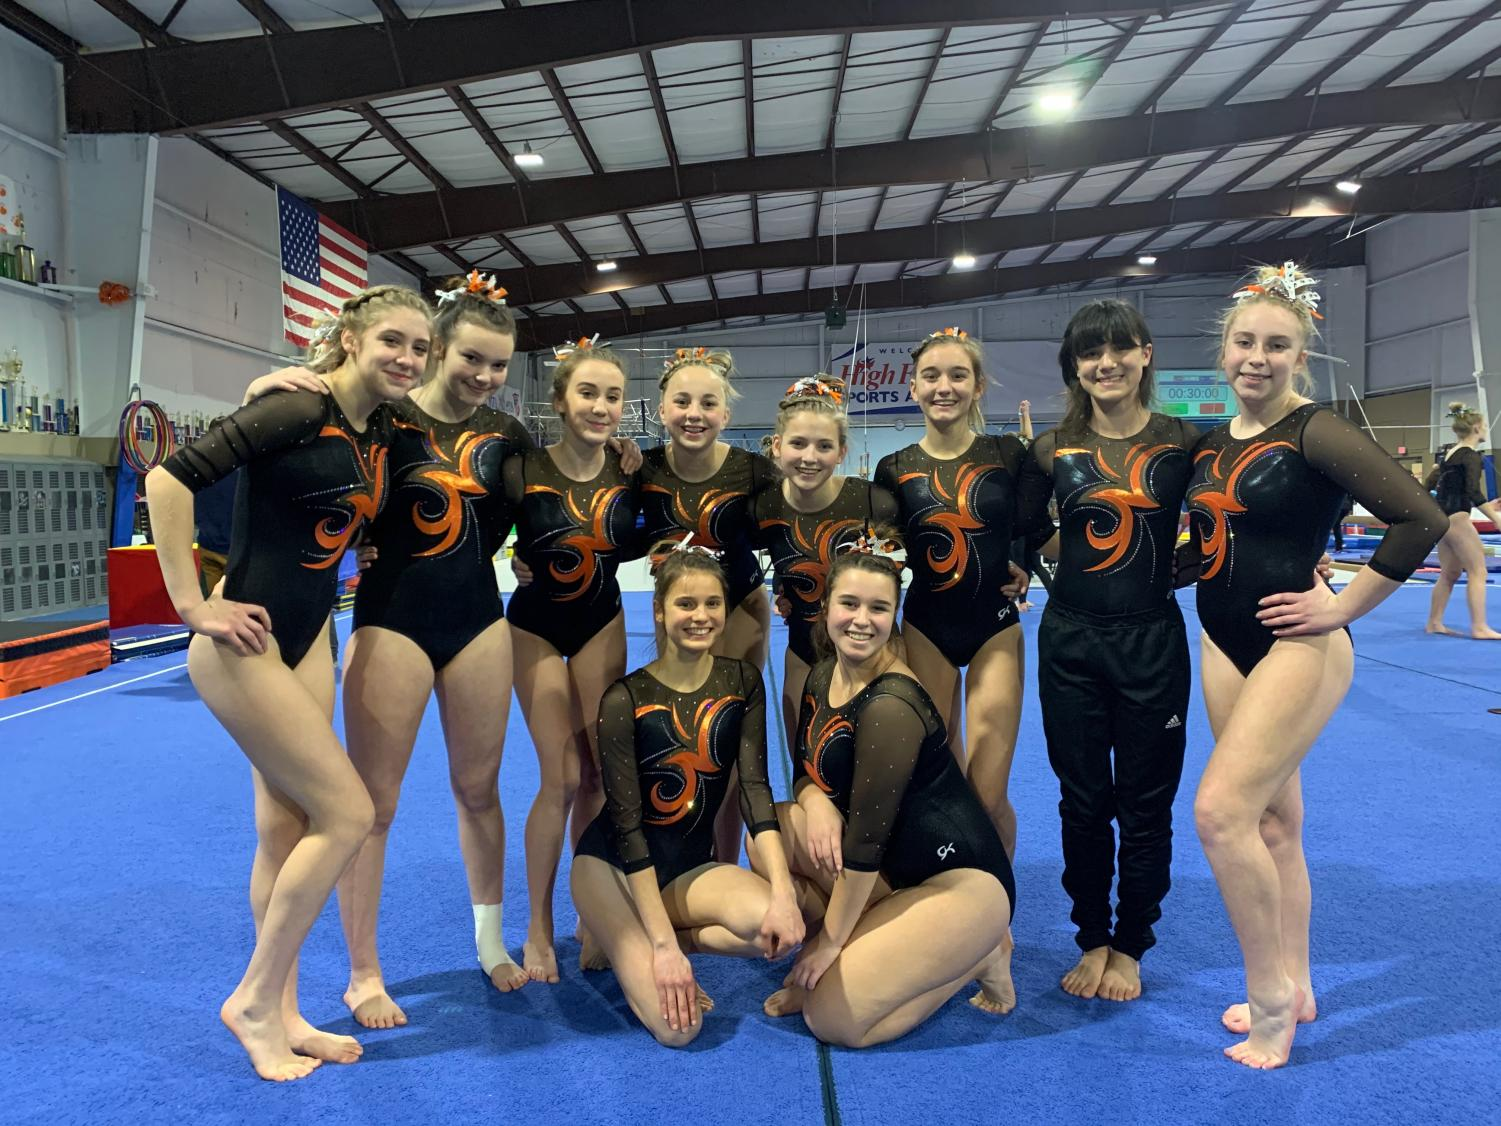 After the meet, the Brighton Gymnastics gather for a group picture to commemorate their first successful meet of the season.